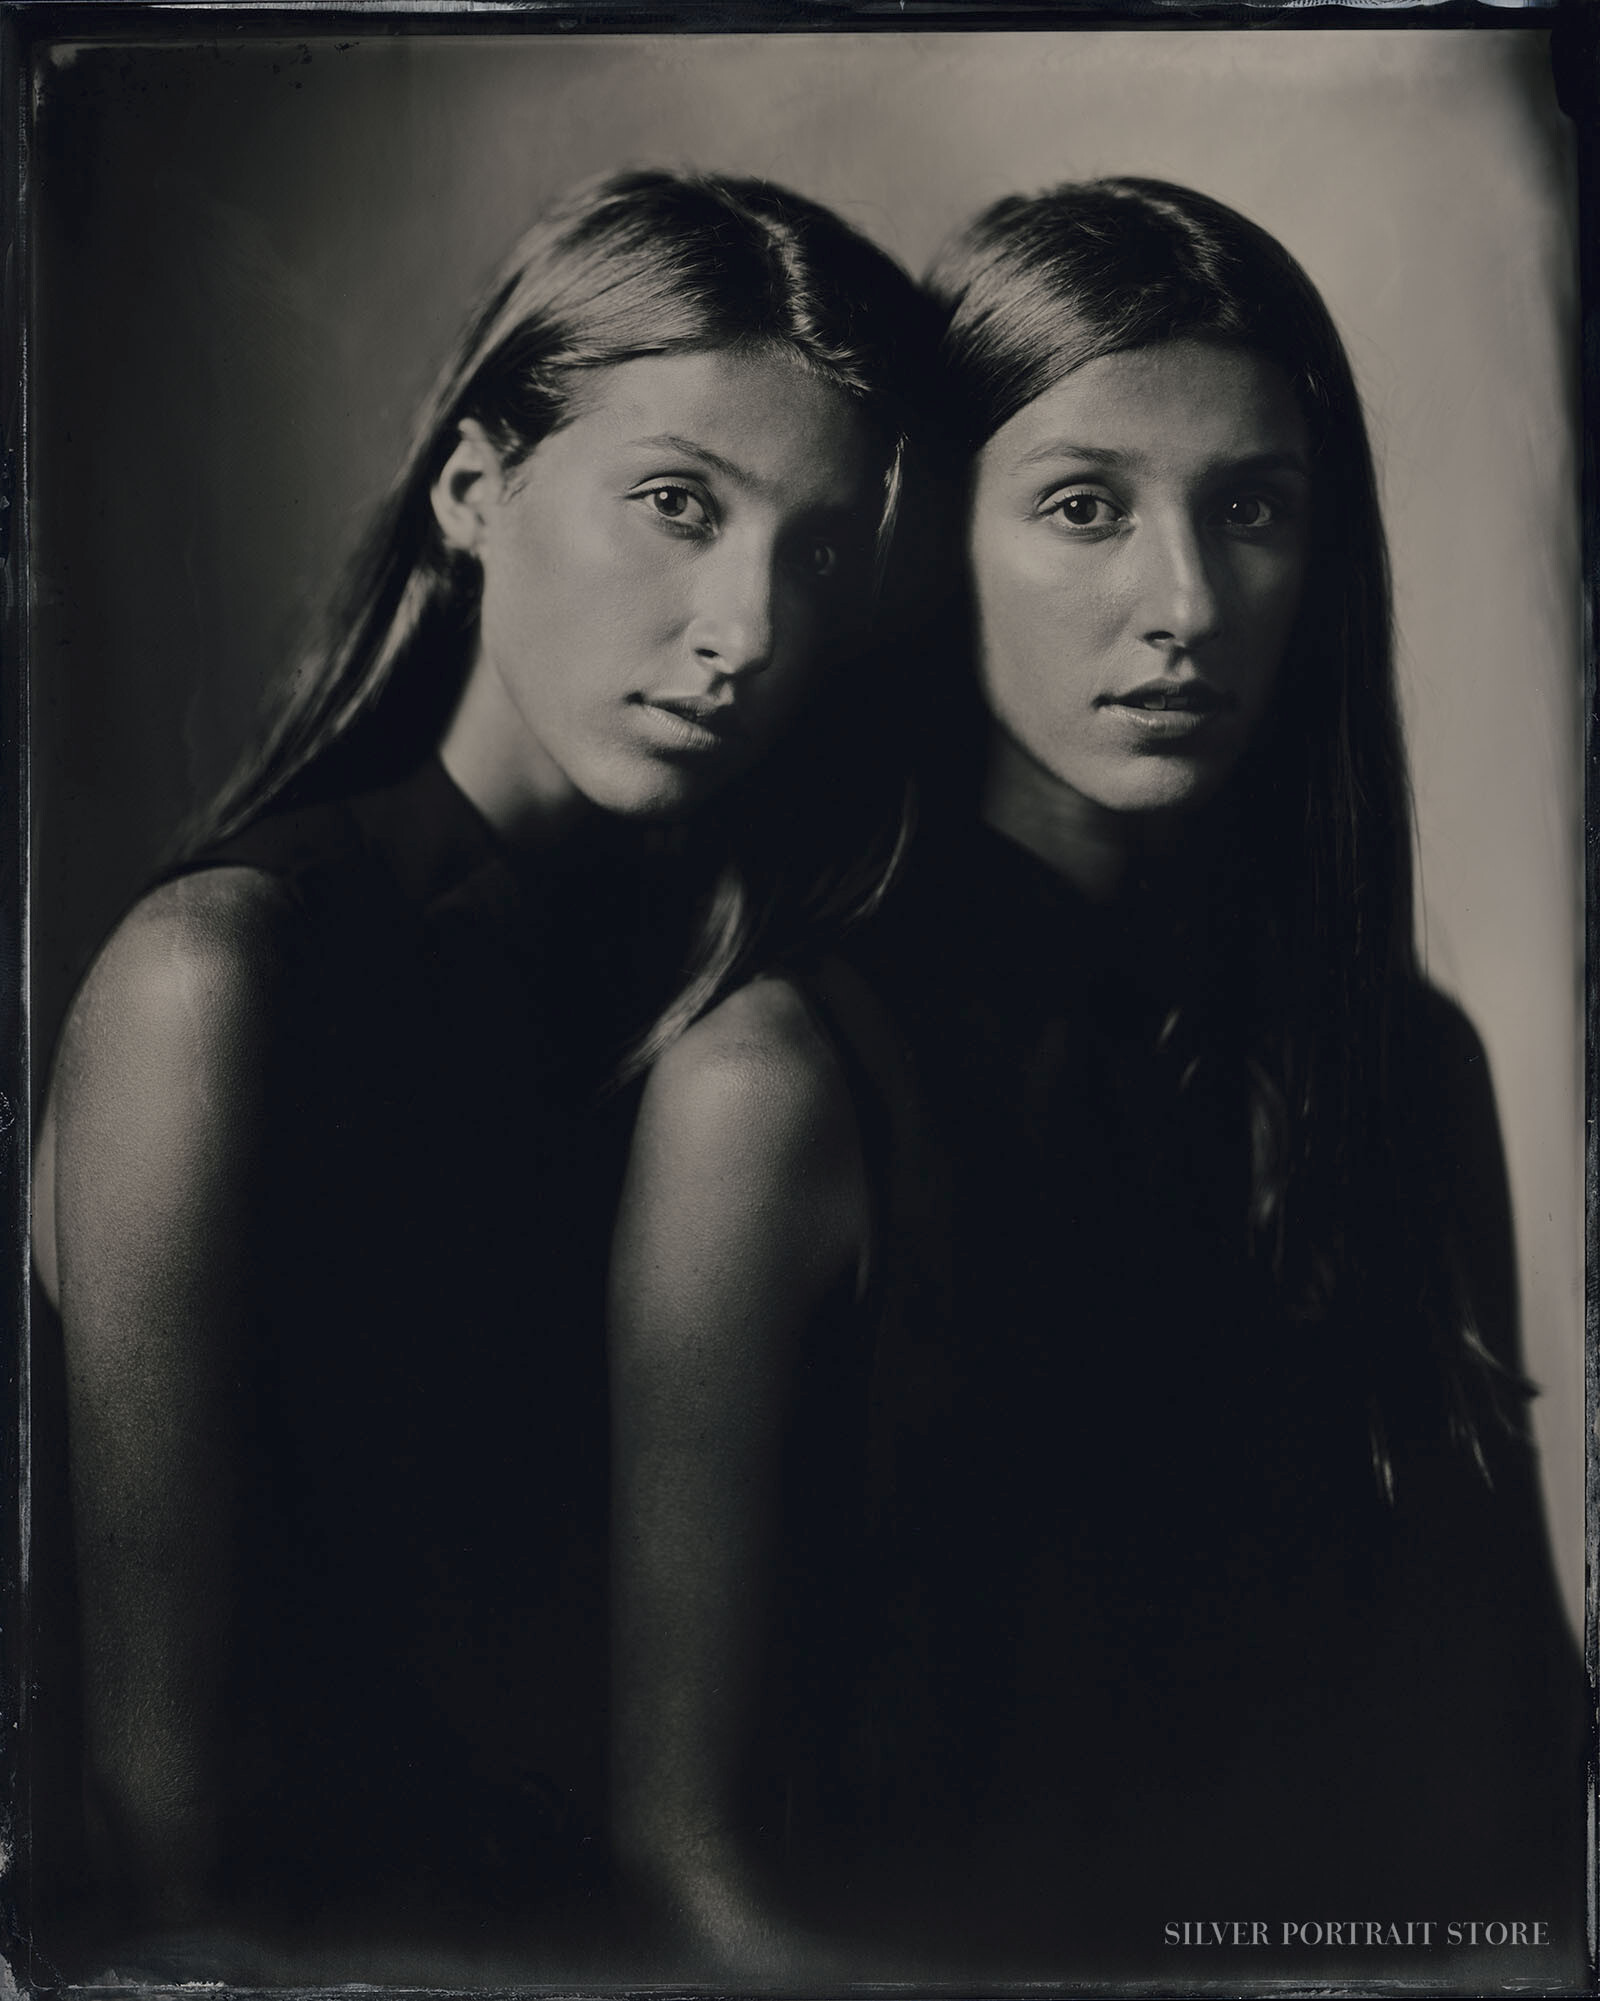 Zelda & Sammie-Silver Portrait Store-Scan from Wet plate collodion-Tintype 20 x 25 cm